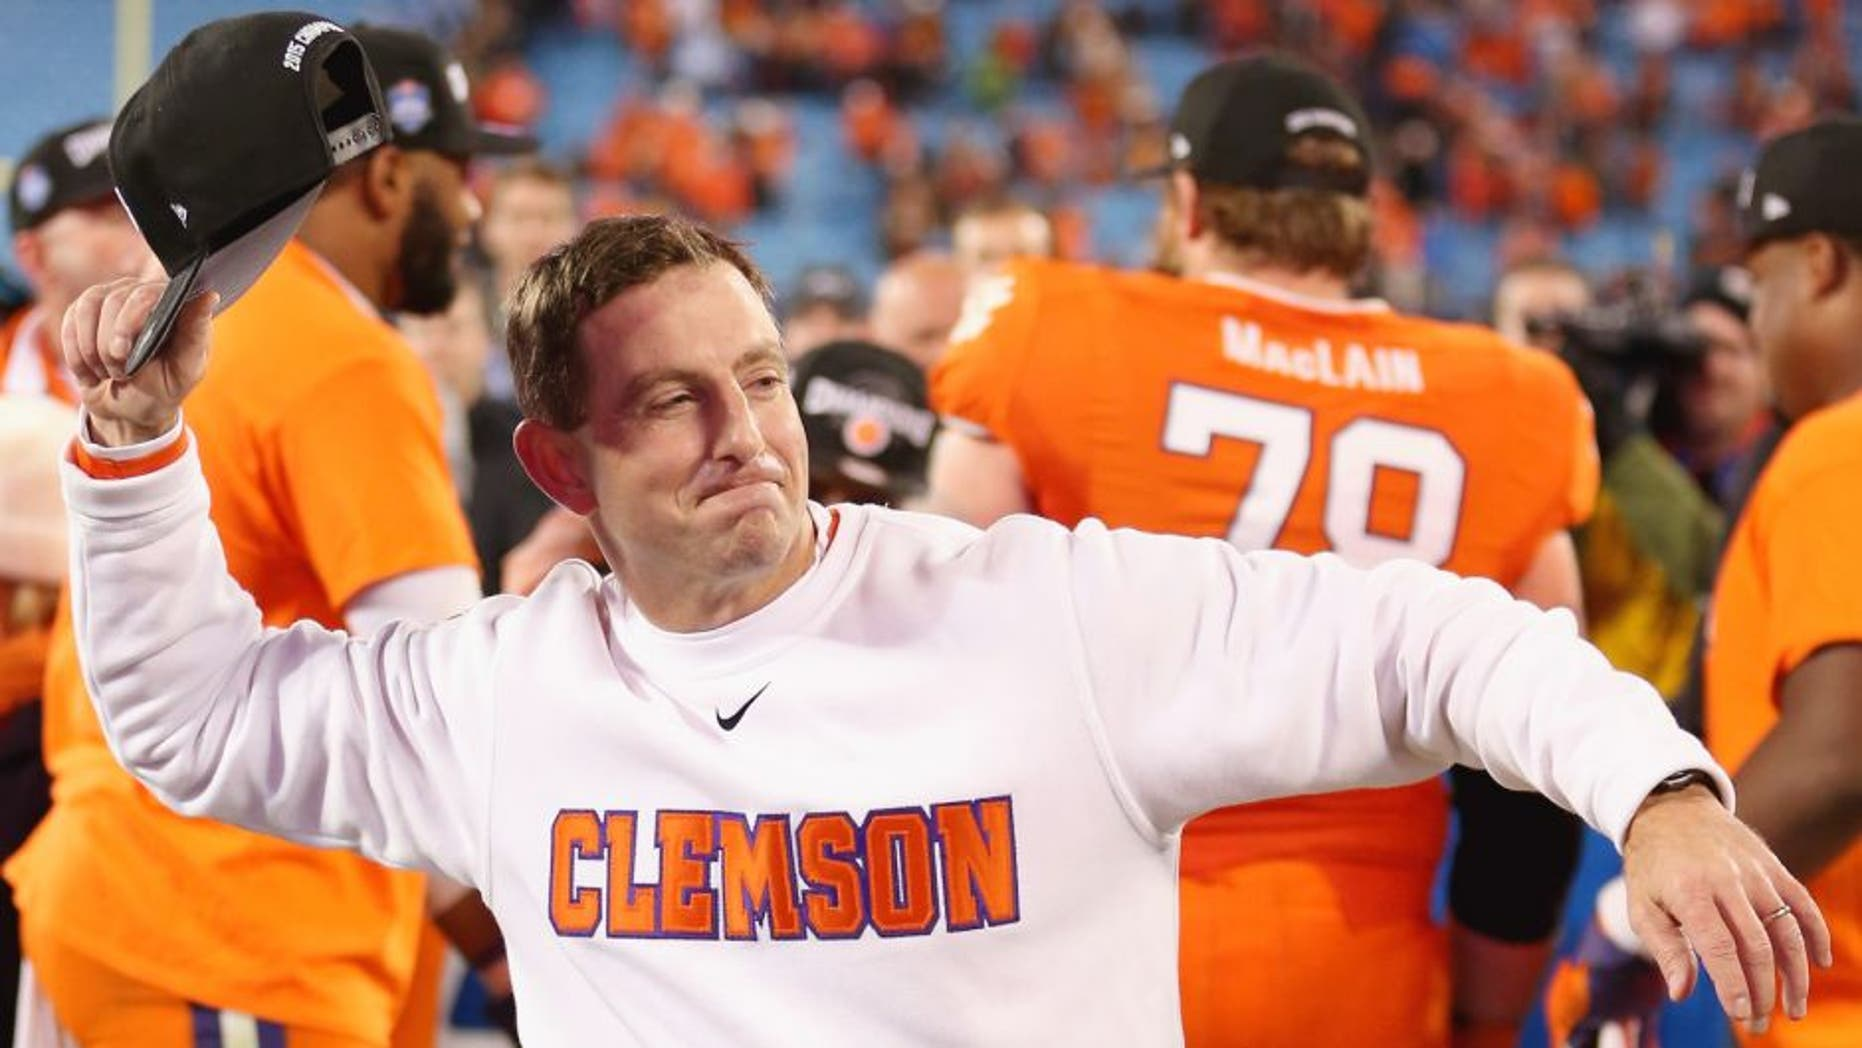 Head coach Dabo Swinney of the Clemson Tigers celebrates after defeating the North Carolina Tar Heels 45-37 at the Atlantic Coast Conference Football Championship at Bank of America Stadium on December 5, 2015 in Charlotte, North Carolina. (Photo by Streeter Lecka/Getty Images)